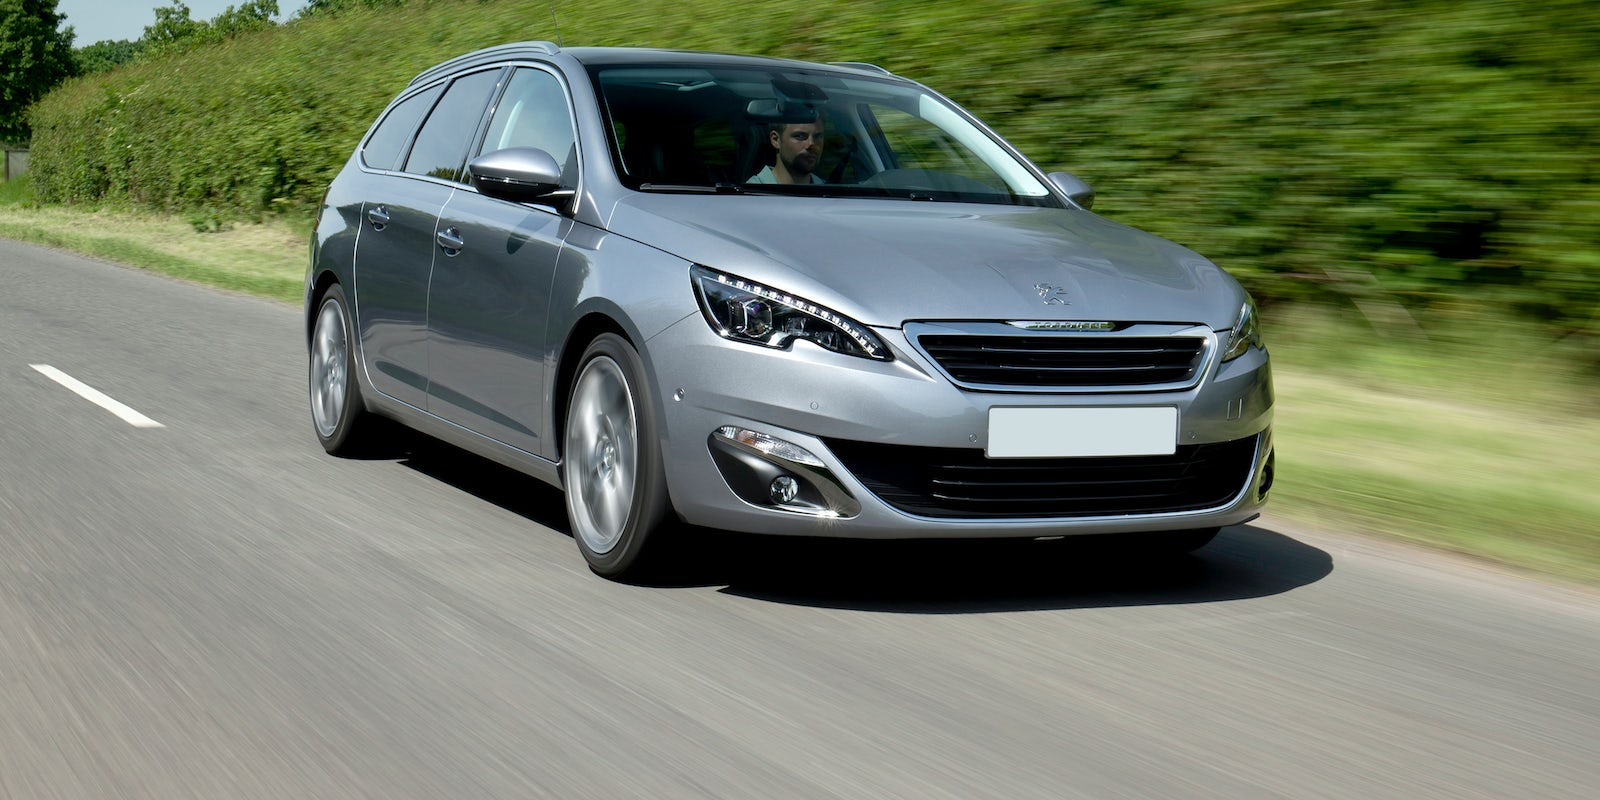 Peugeot 308 Sw Review Carwow